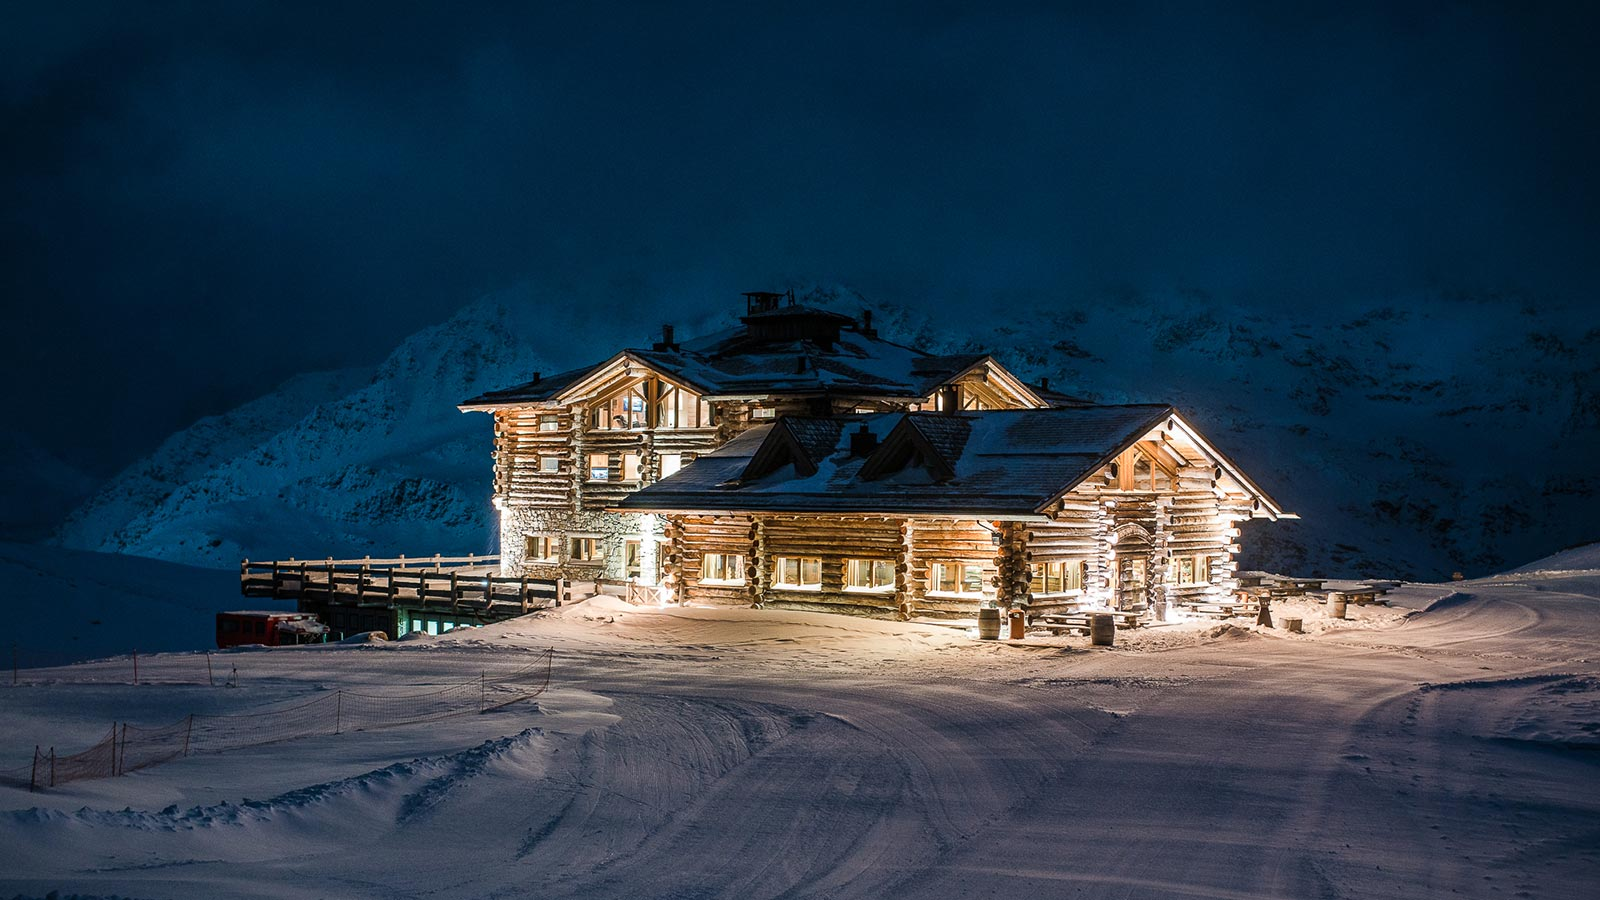 Il mountain lodge di notte splende di luci